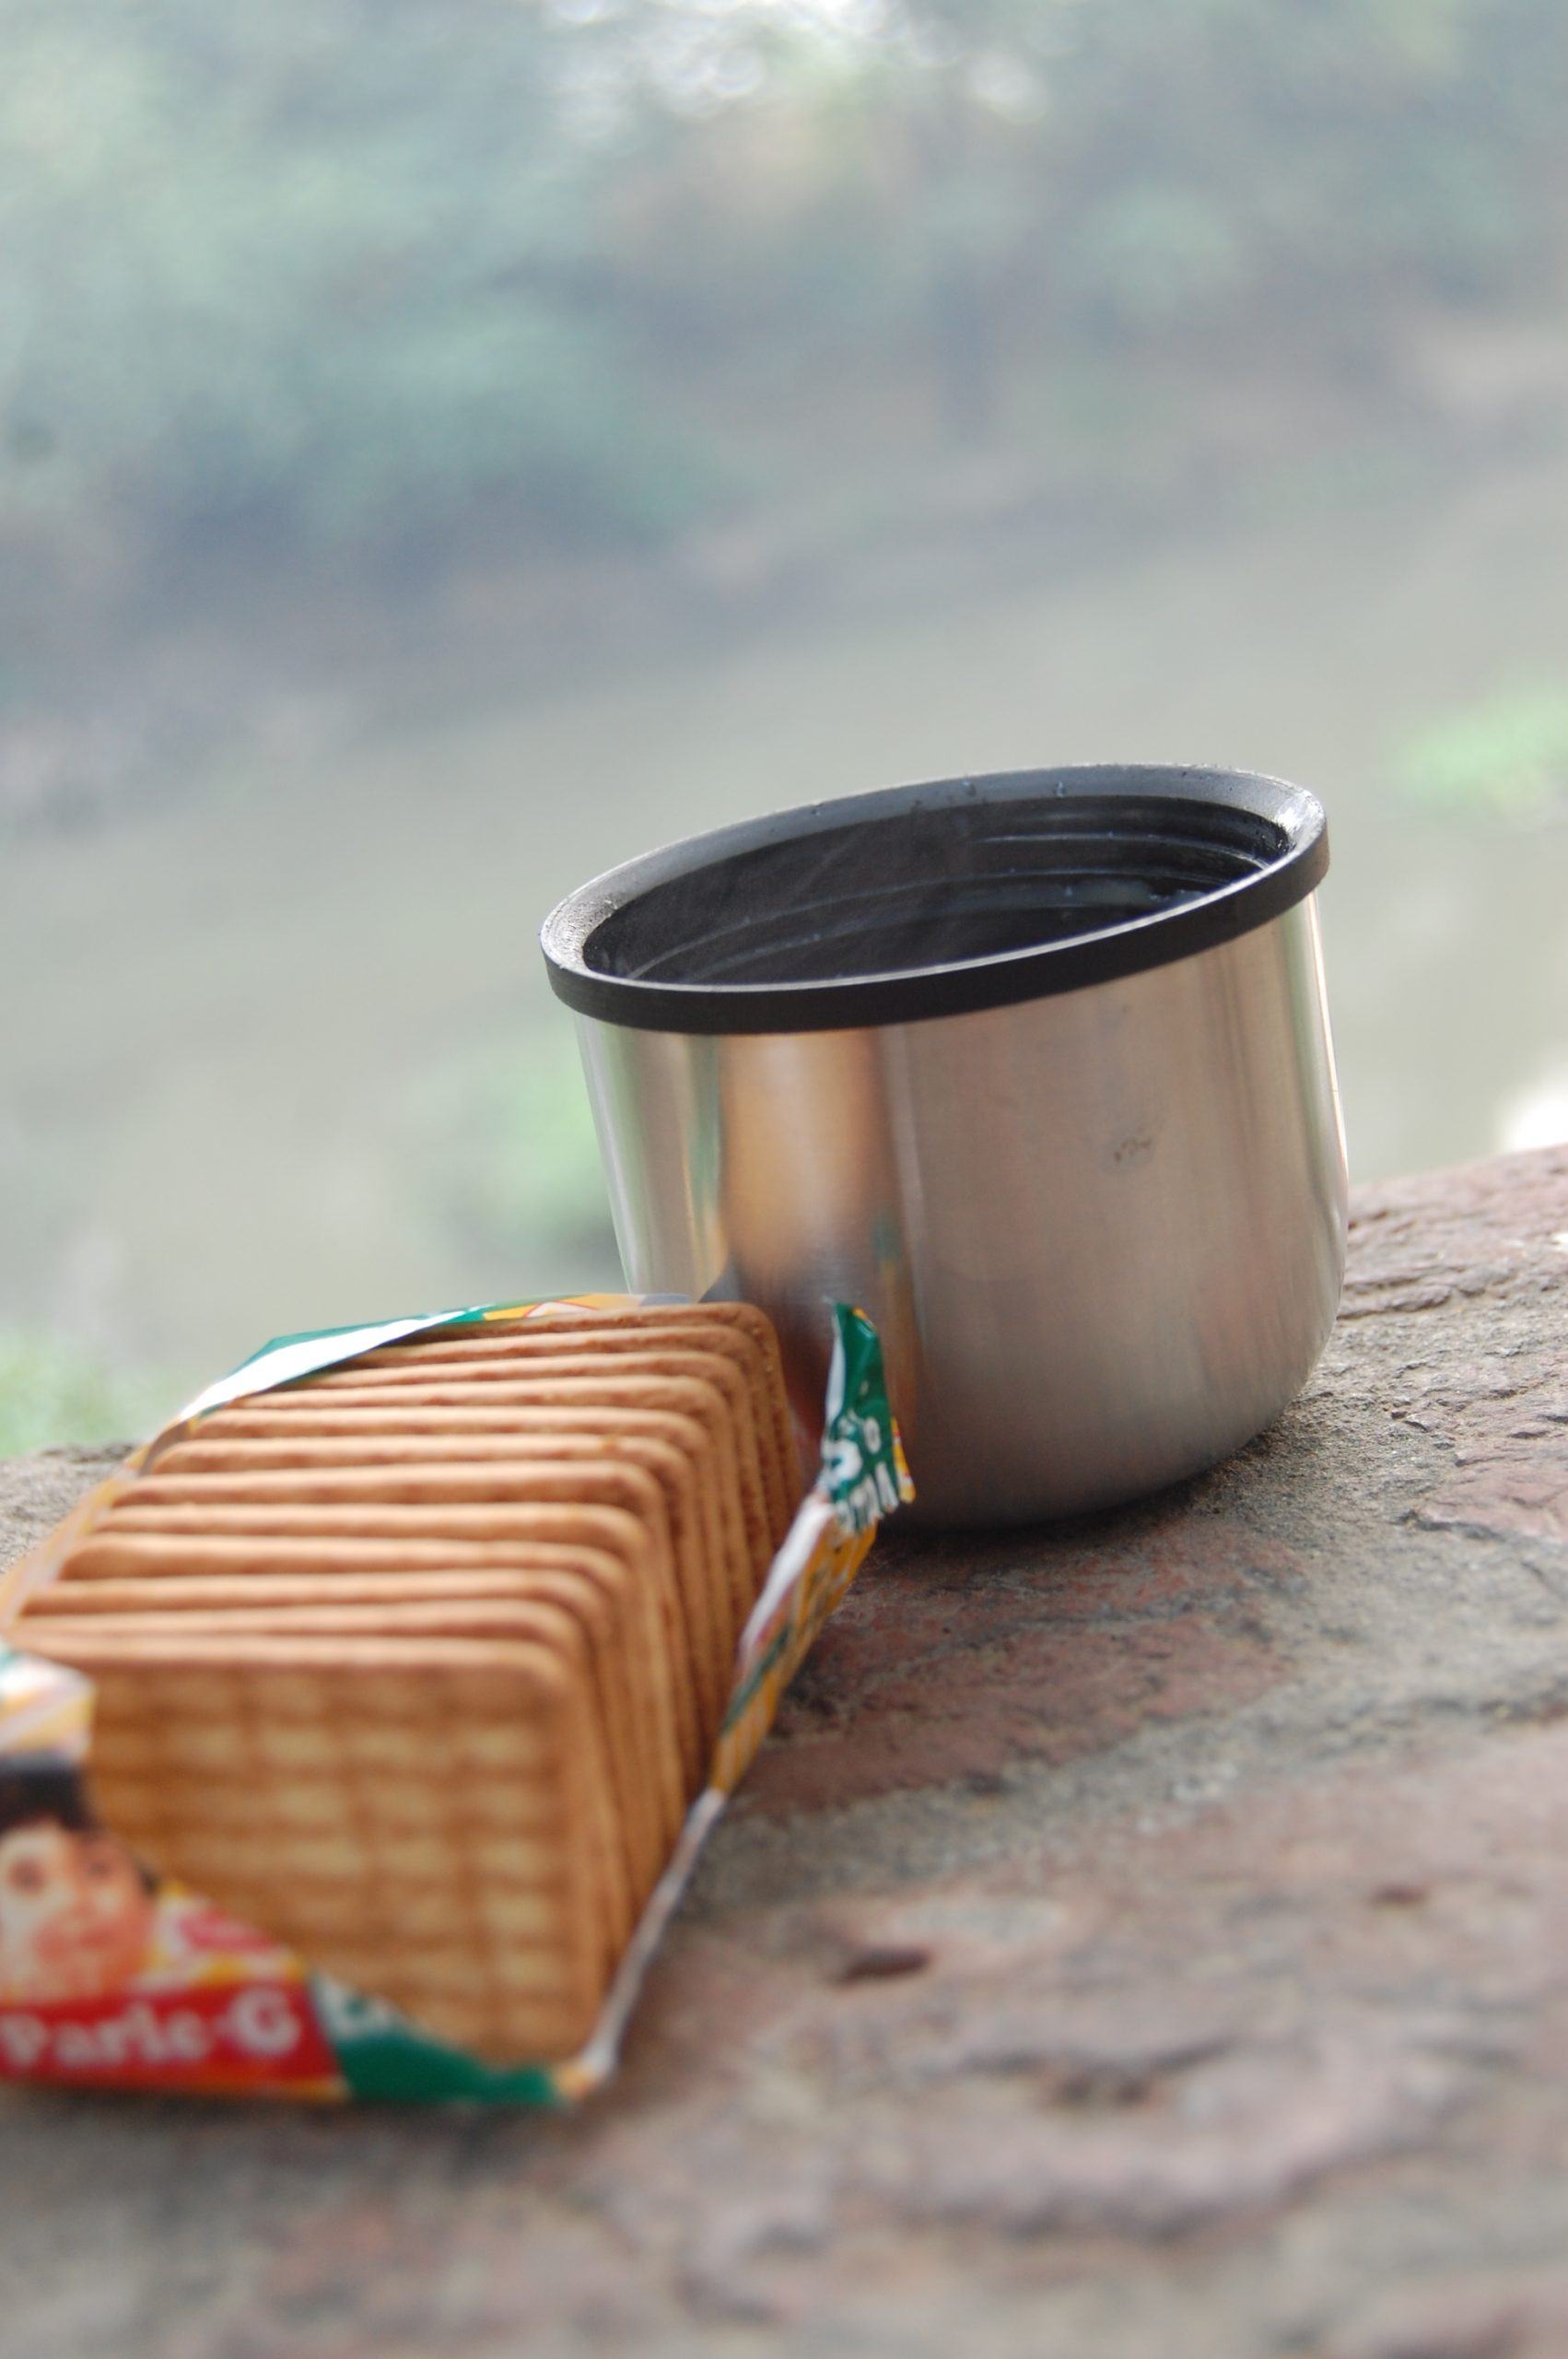 A tea cup and biscuits